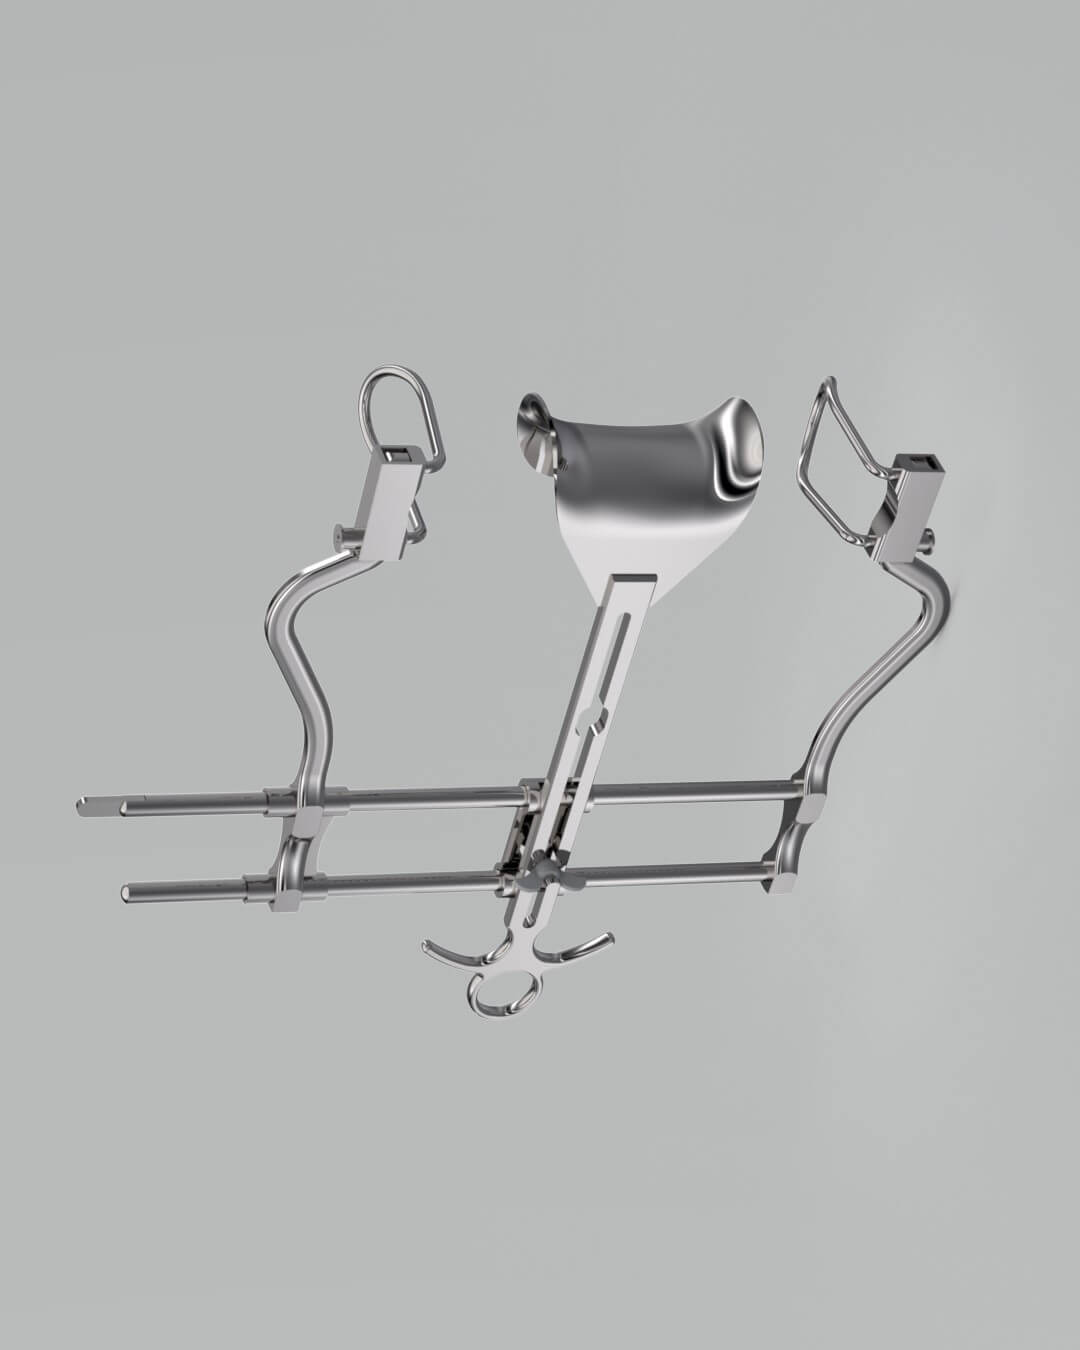 CLINIMED-Balfour-Retractor-2